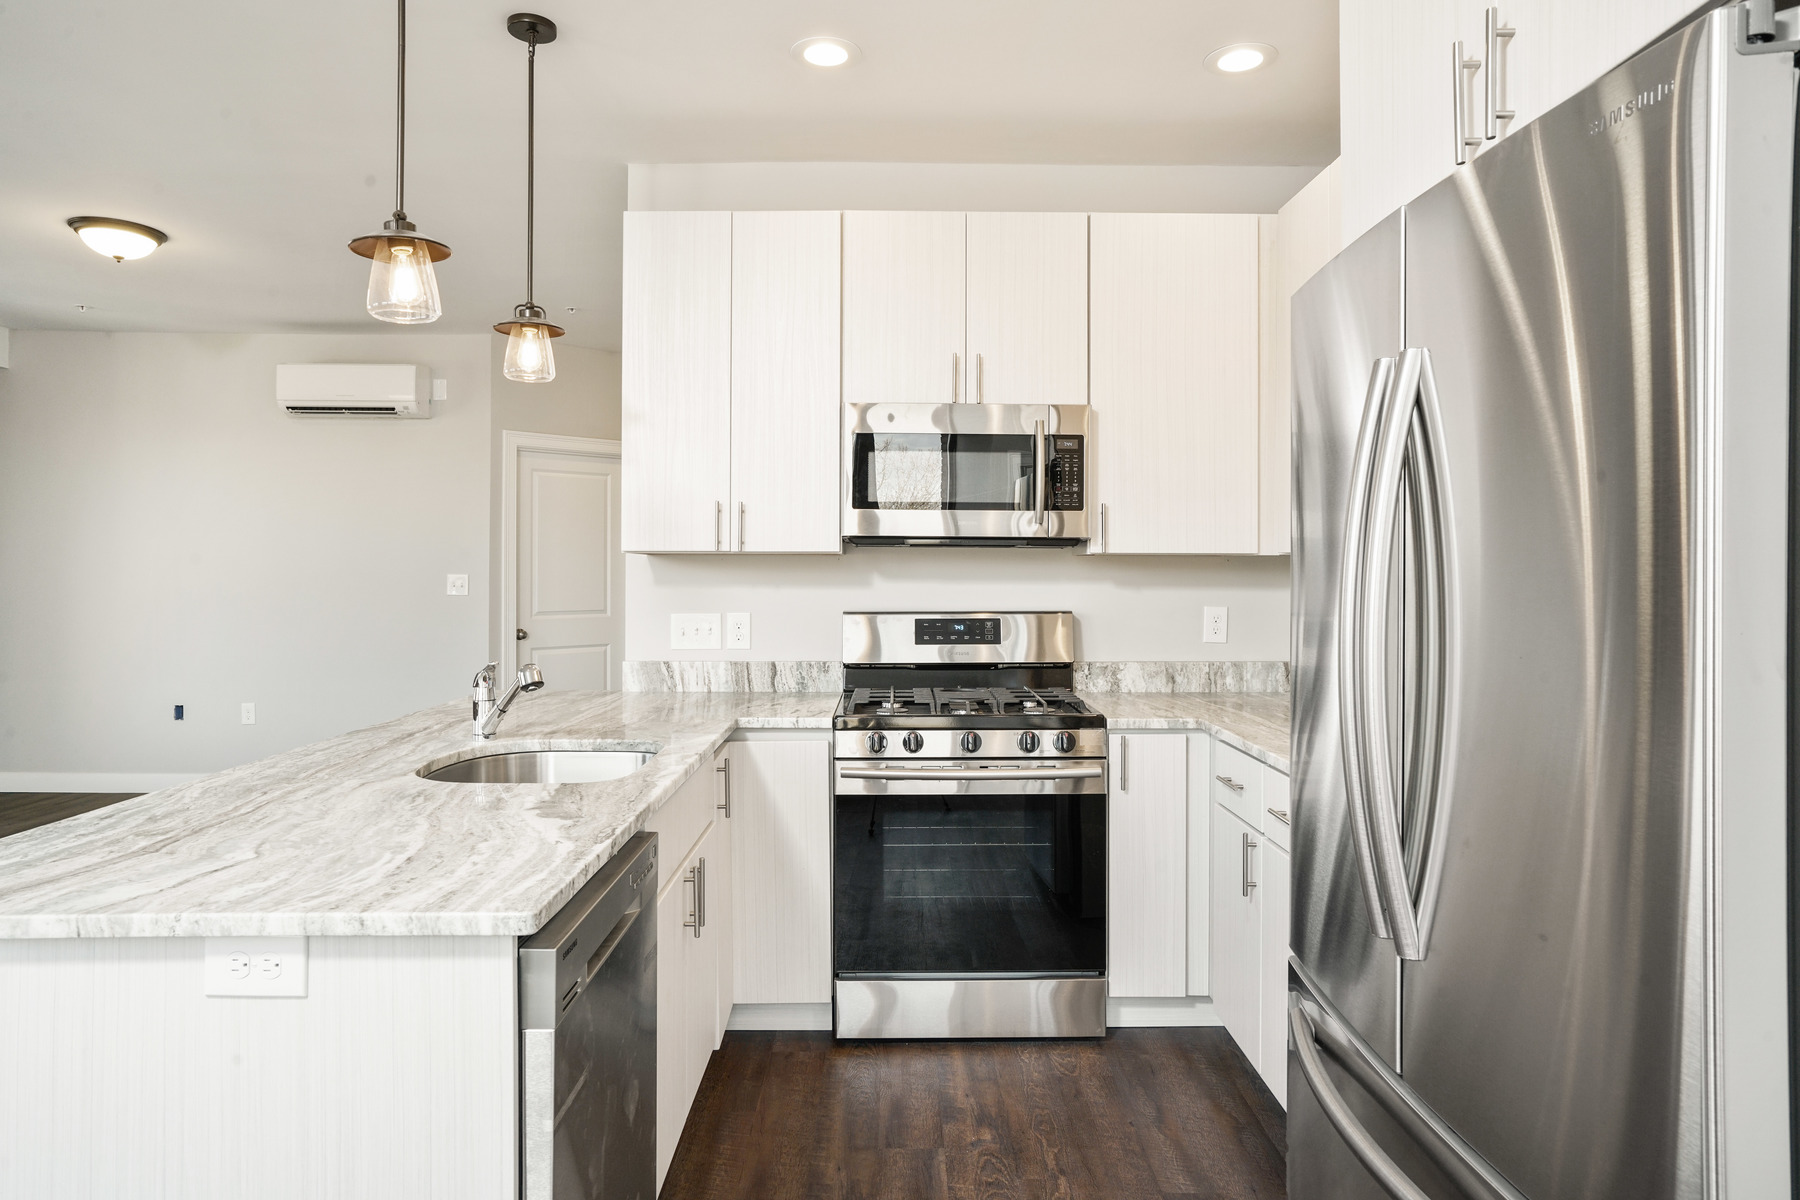 Apartment for Rent at Mill City Lux apartment for rent 685 Lawrence Street Unit 409 Lowell, Massachusetts 01852 United States